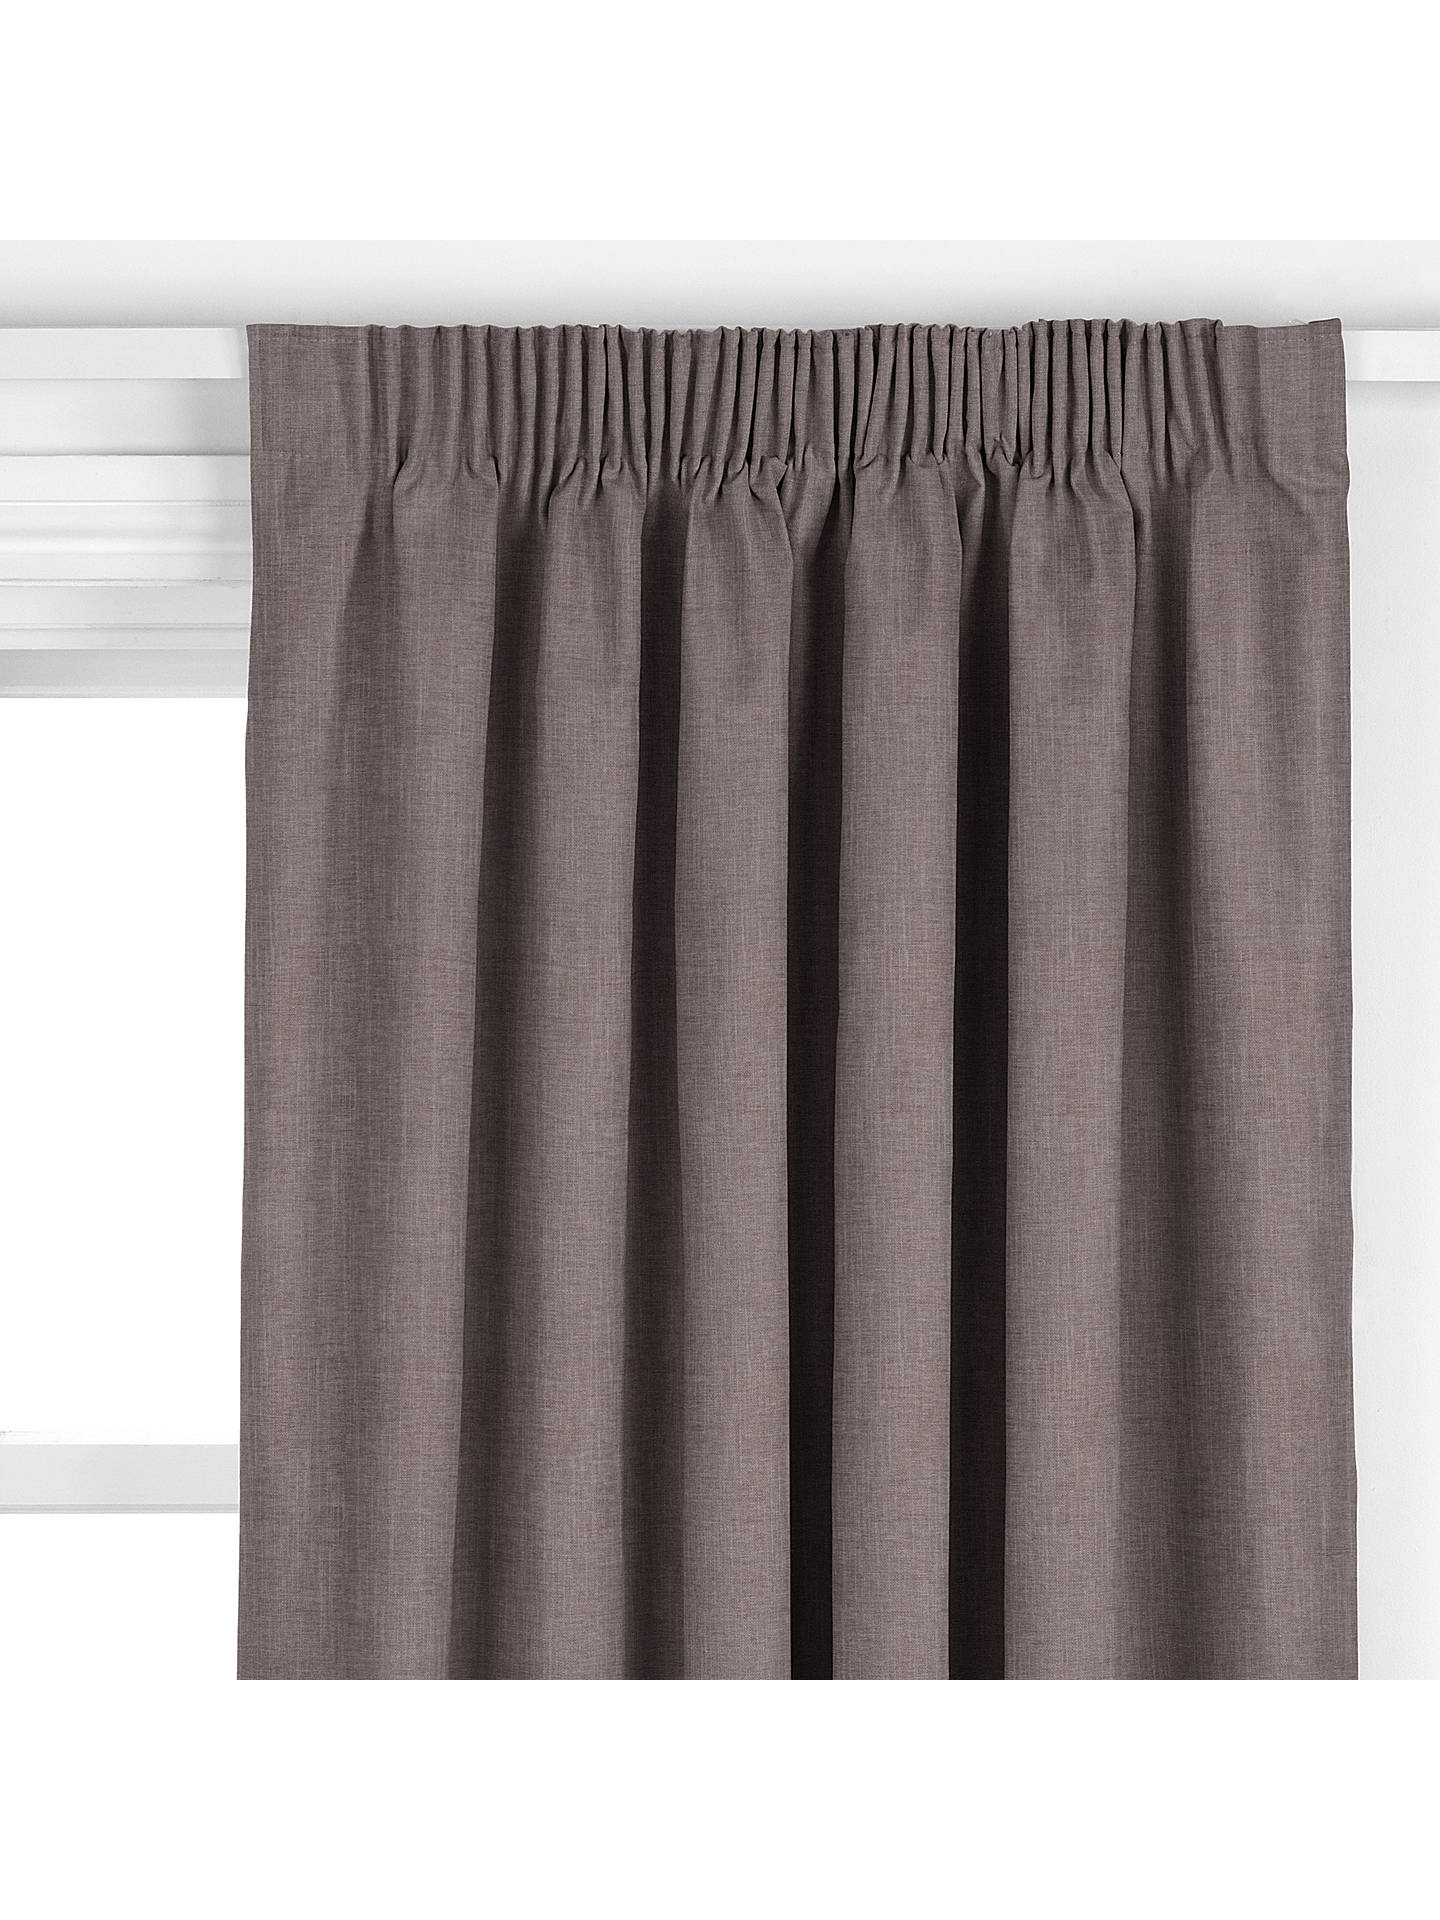 John Lewis Amp Partners Rothko Made To Measure Curtains